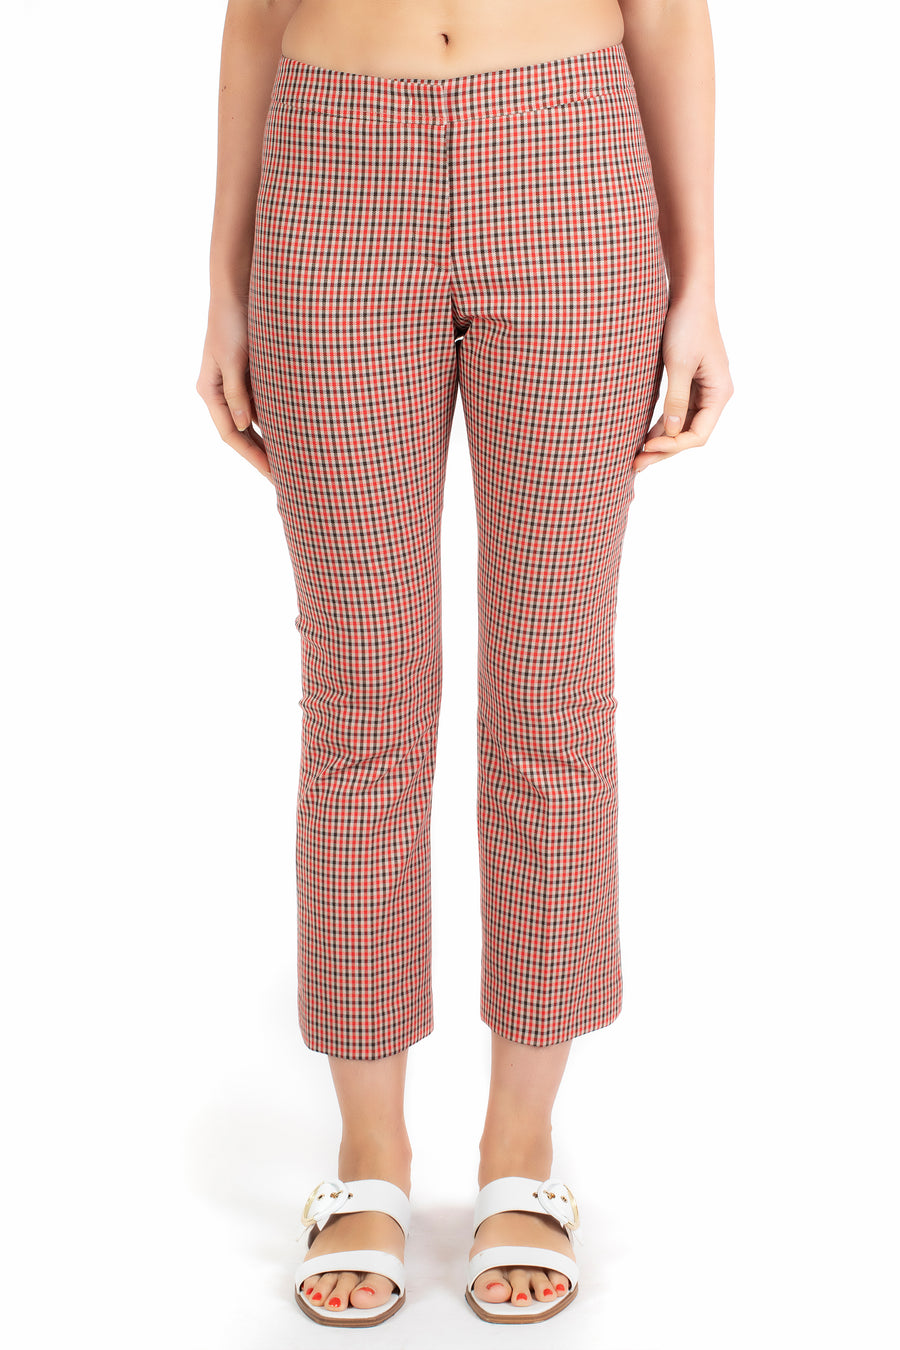 Monet Cropped Kick Plaid Pant in Scarlet